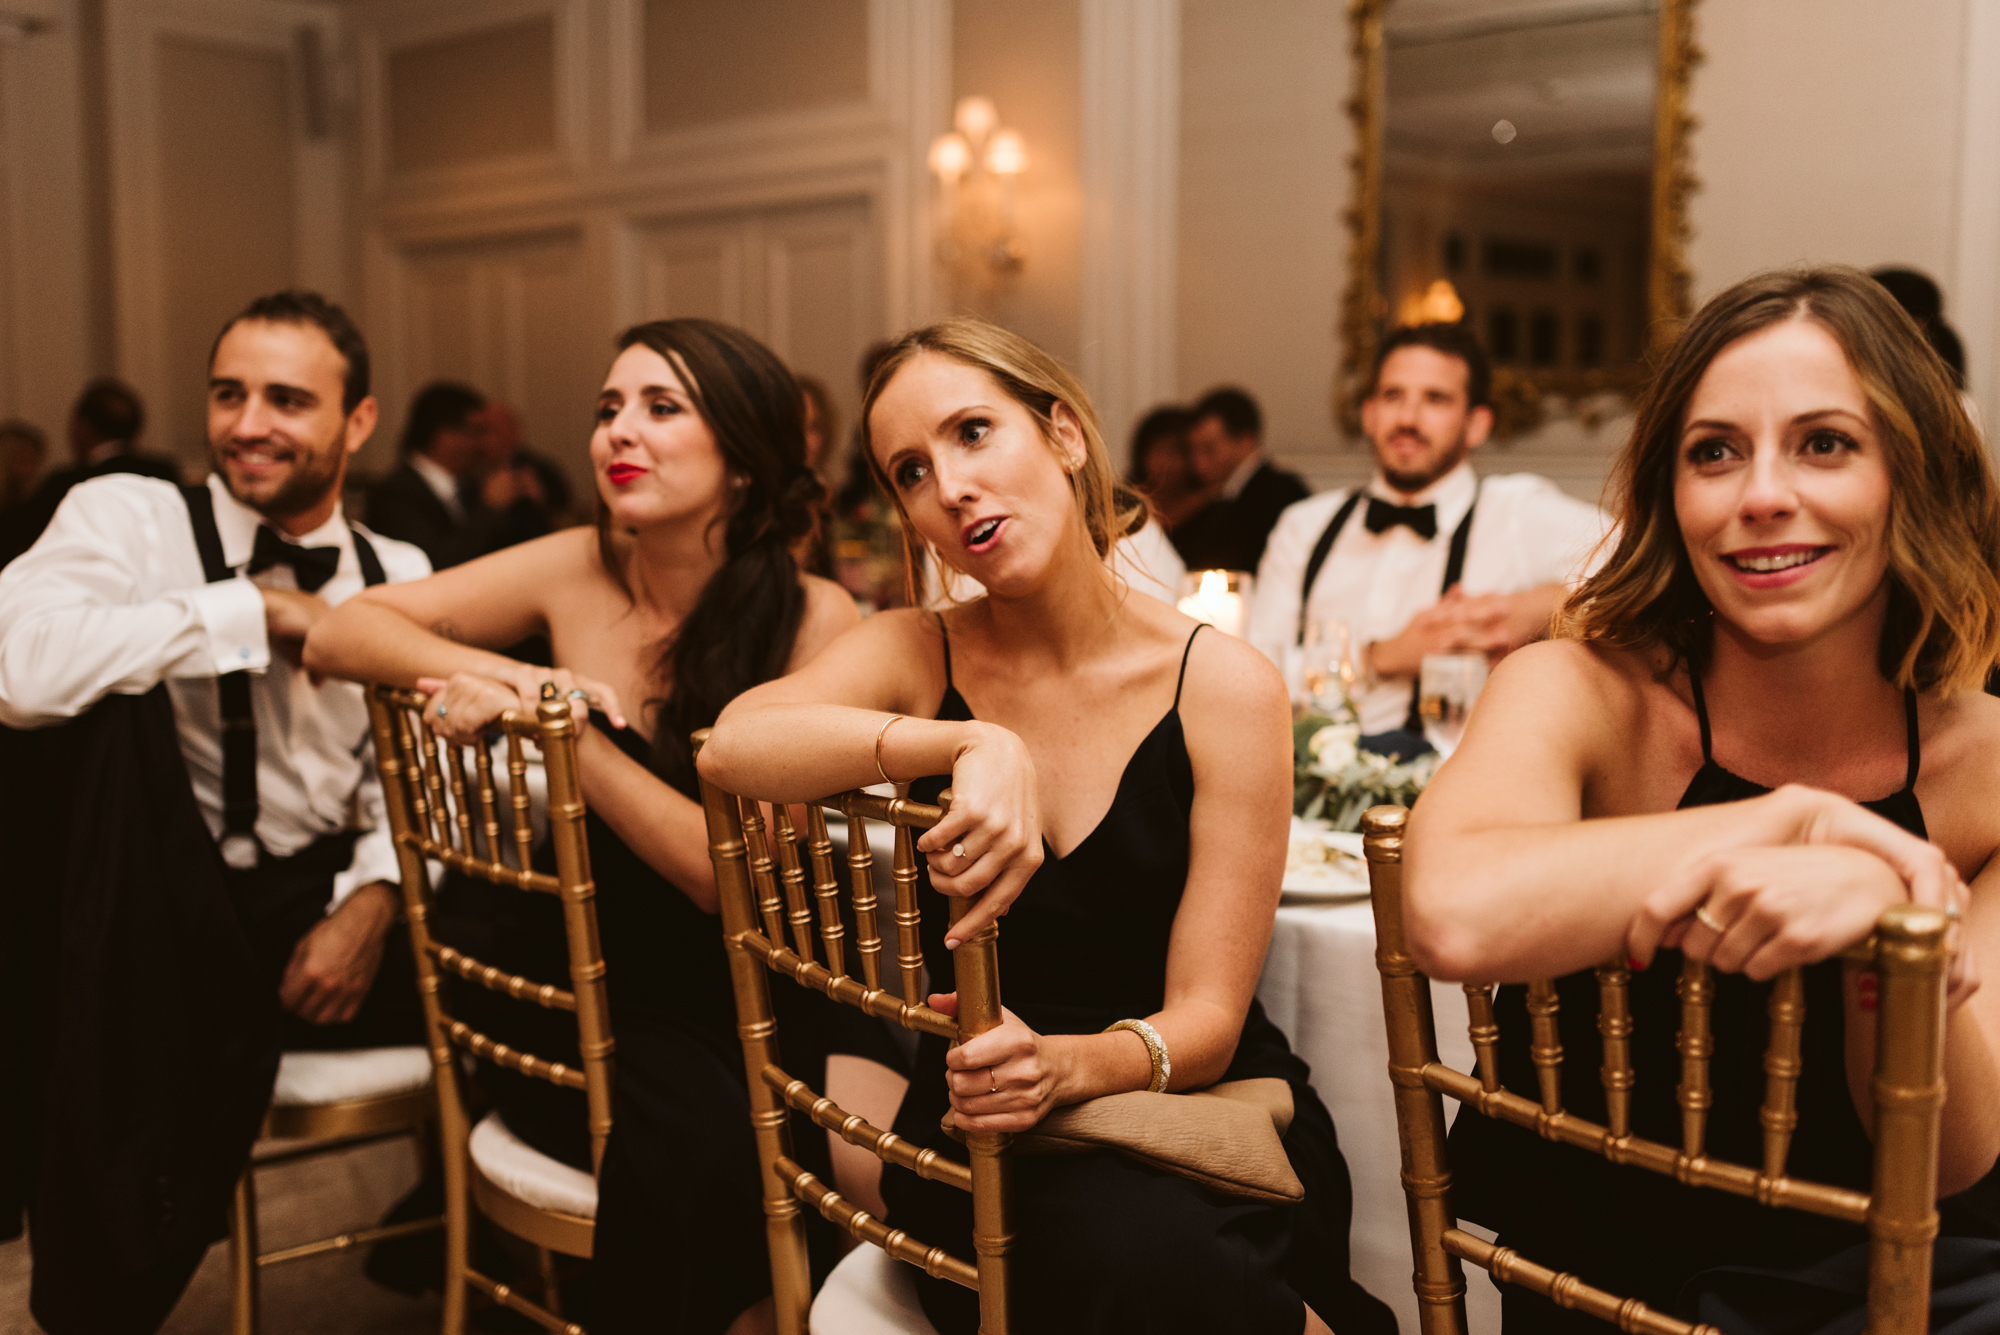 Elegant, Columbia Country Club, Chevy Chase Maryland, Baltimore Wedding Photographer, Classic, Traditional, Bridesmaids Watching Couple's First Dance